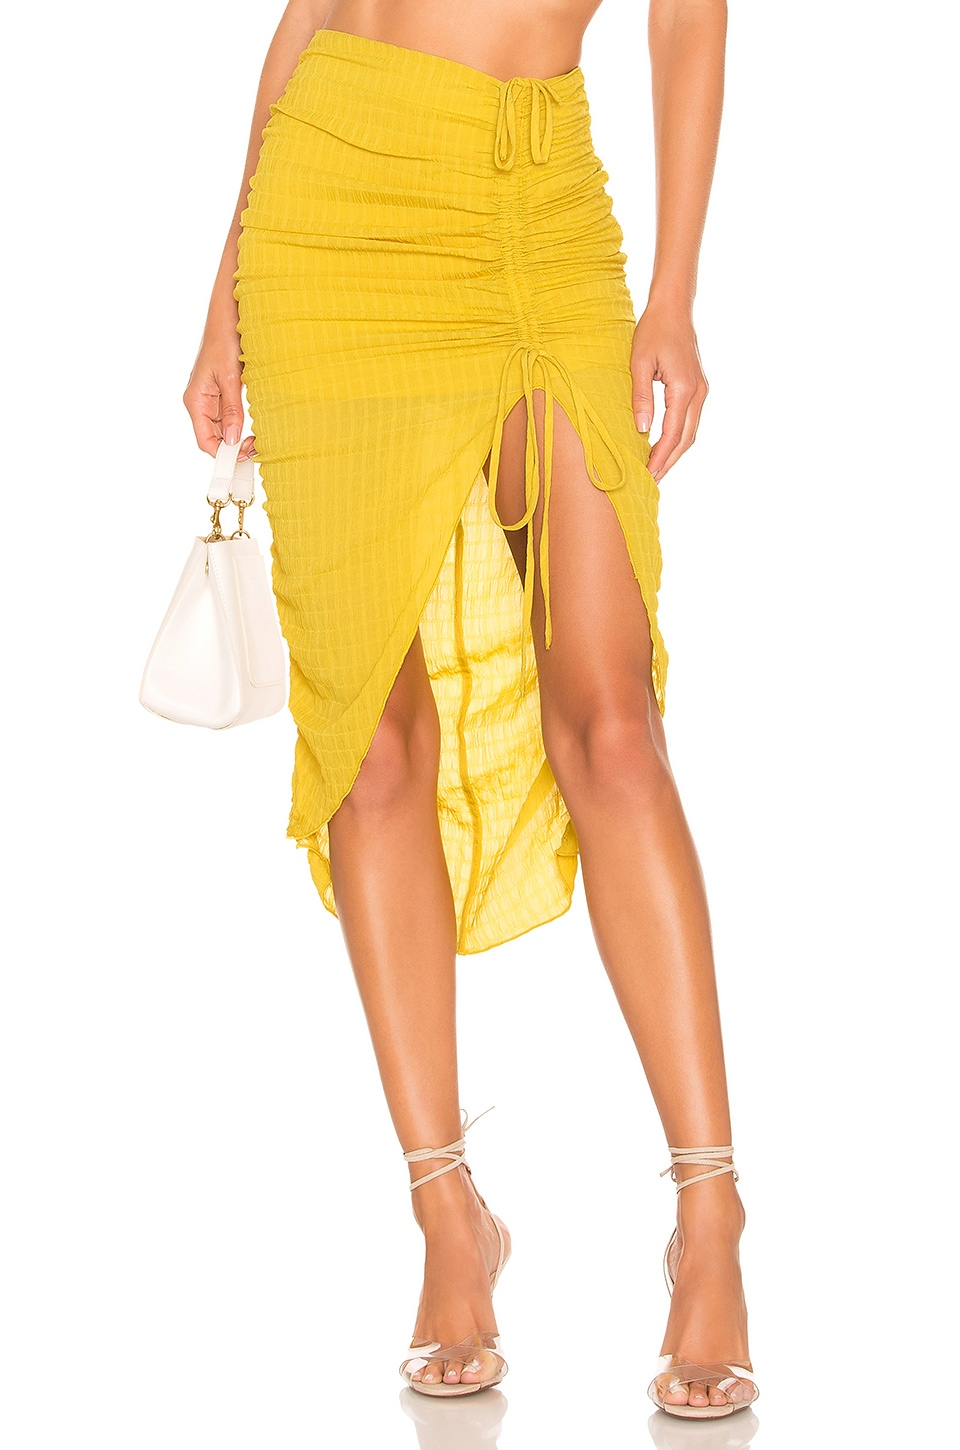 Lovers + Friends Brooke Midi Skirt in Yellow